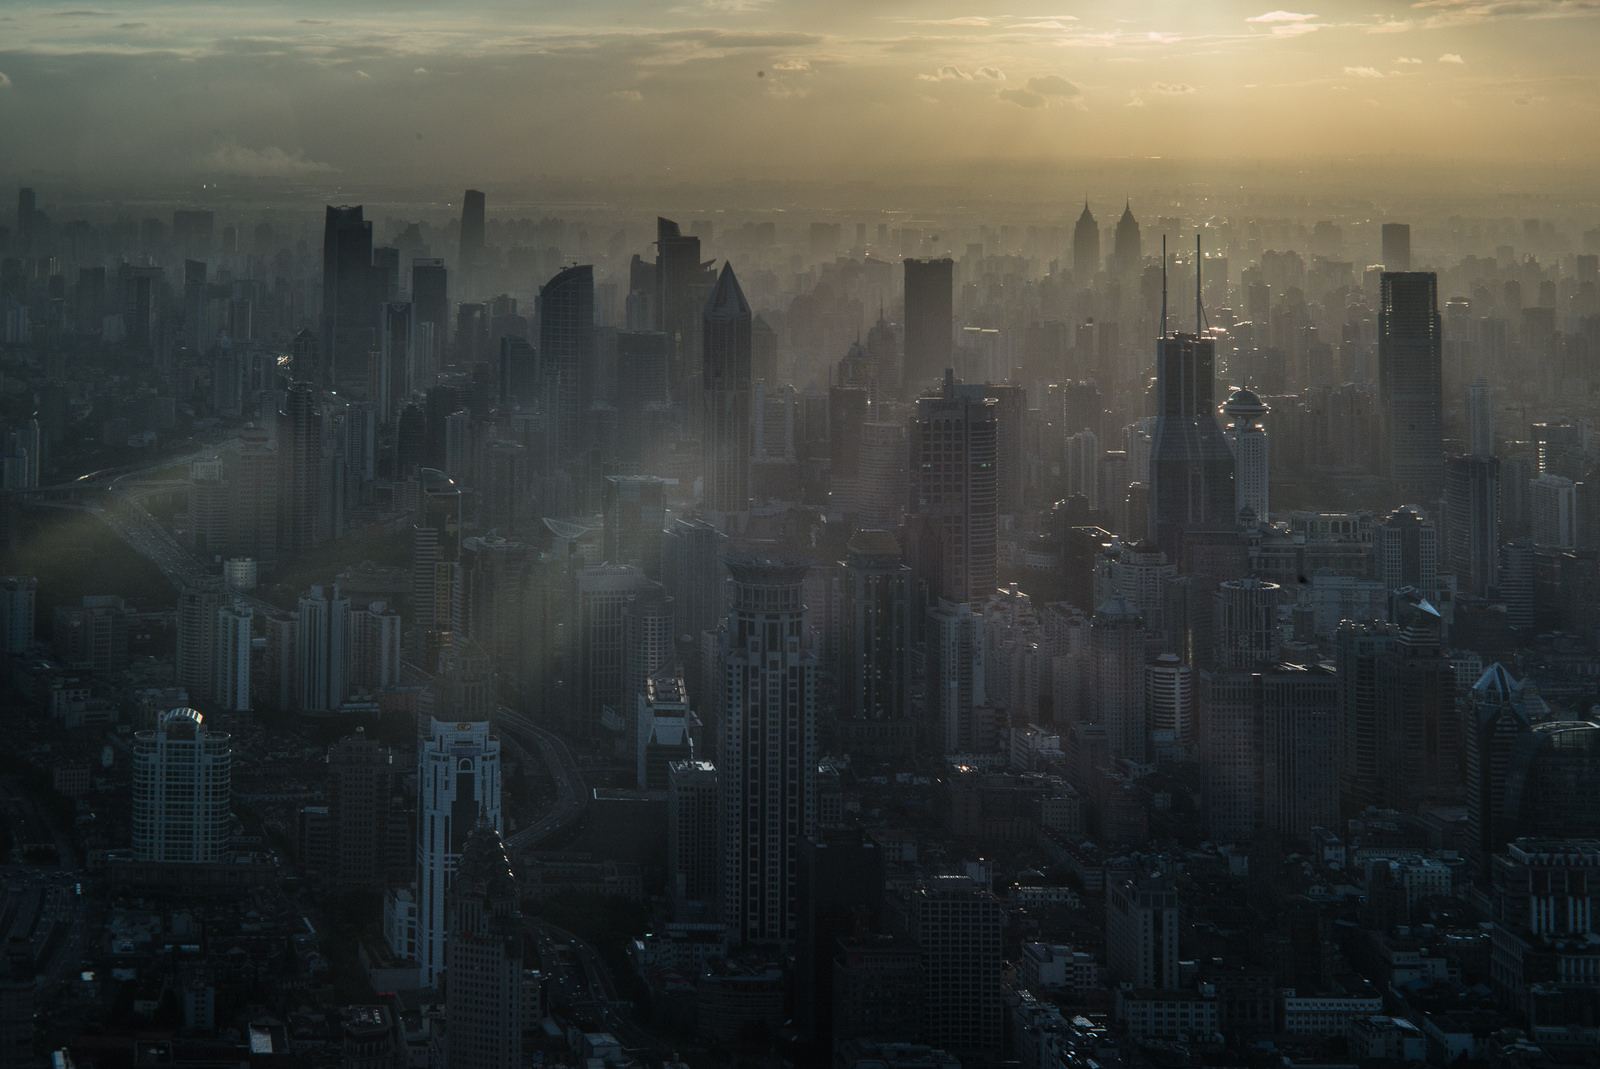 Sunshine breaking through smoggy skyscrapers in Shanghai